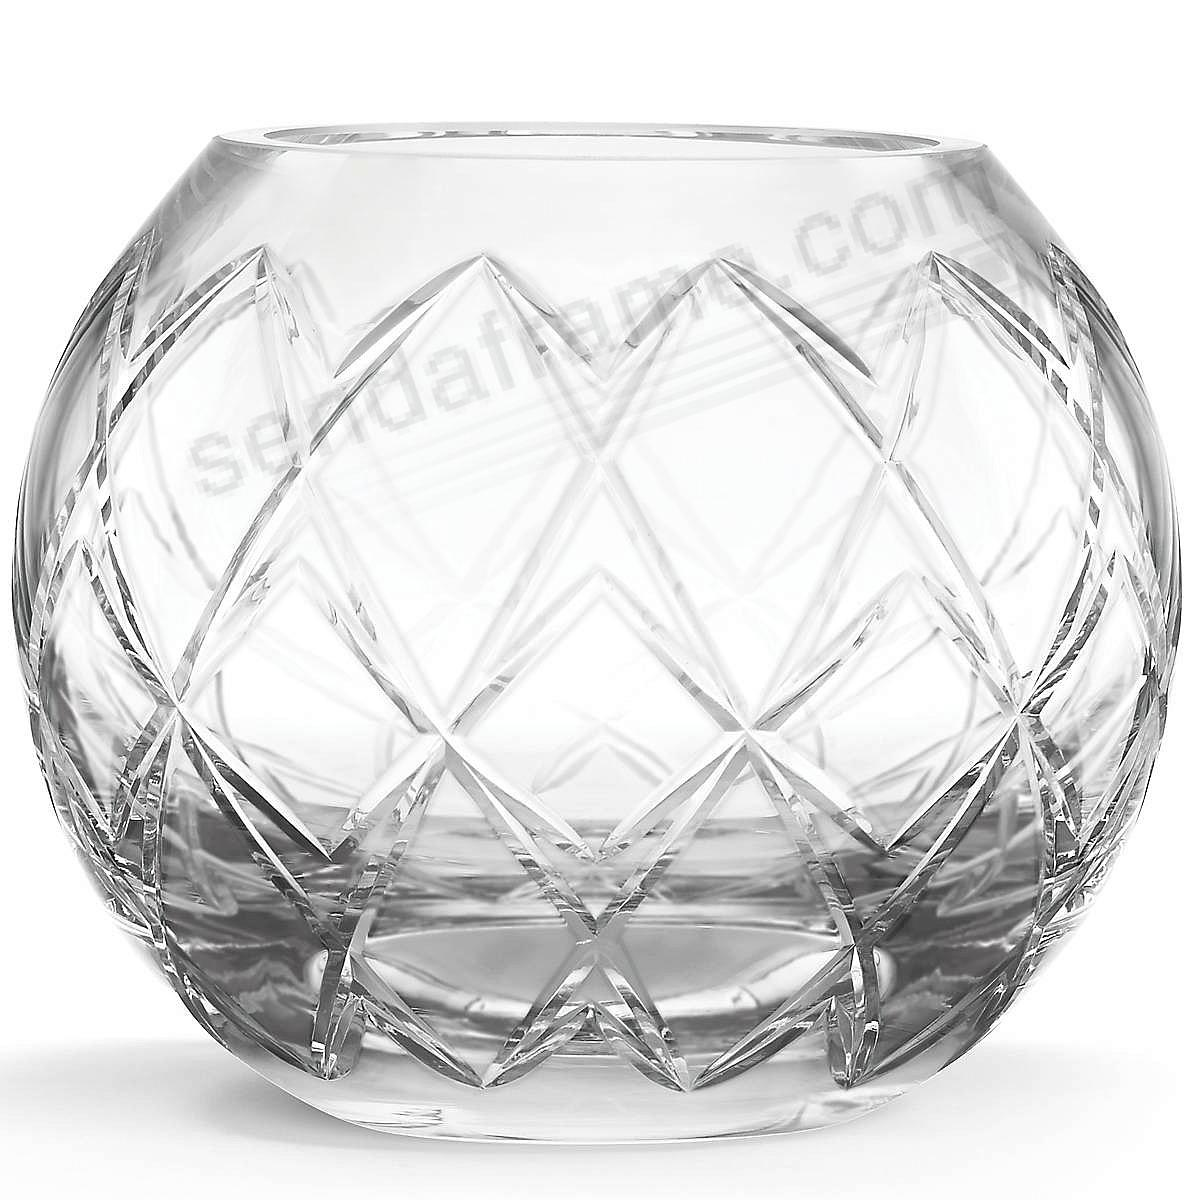 CALHOUN COURT Crystal Rose Bowl 7-in by kate spade new york®